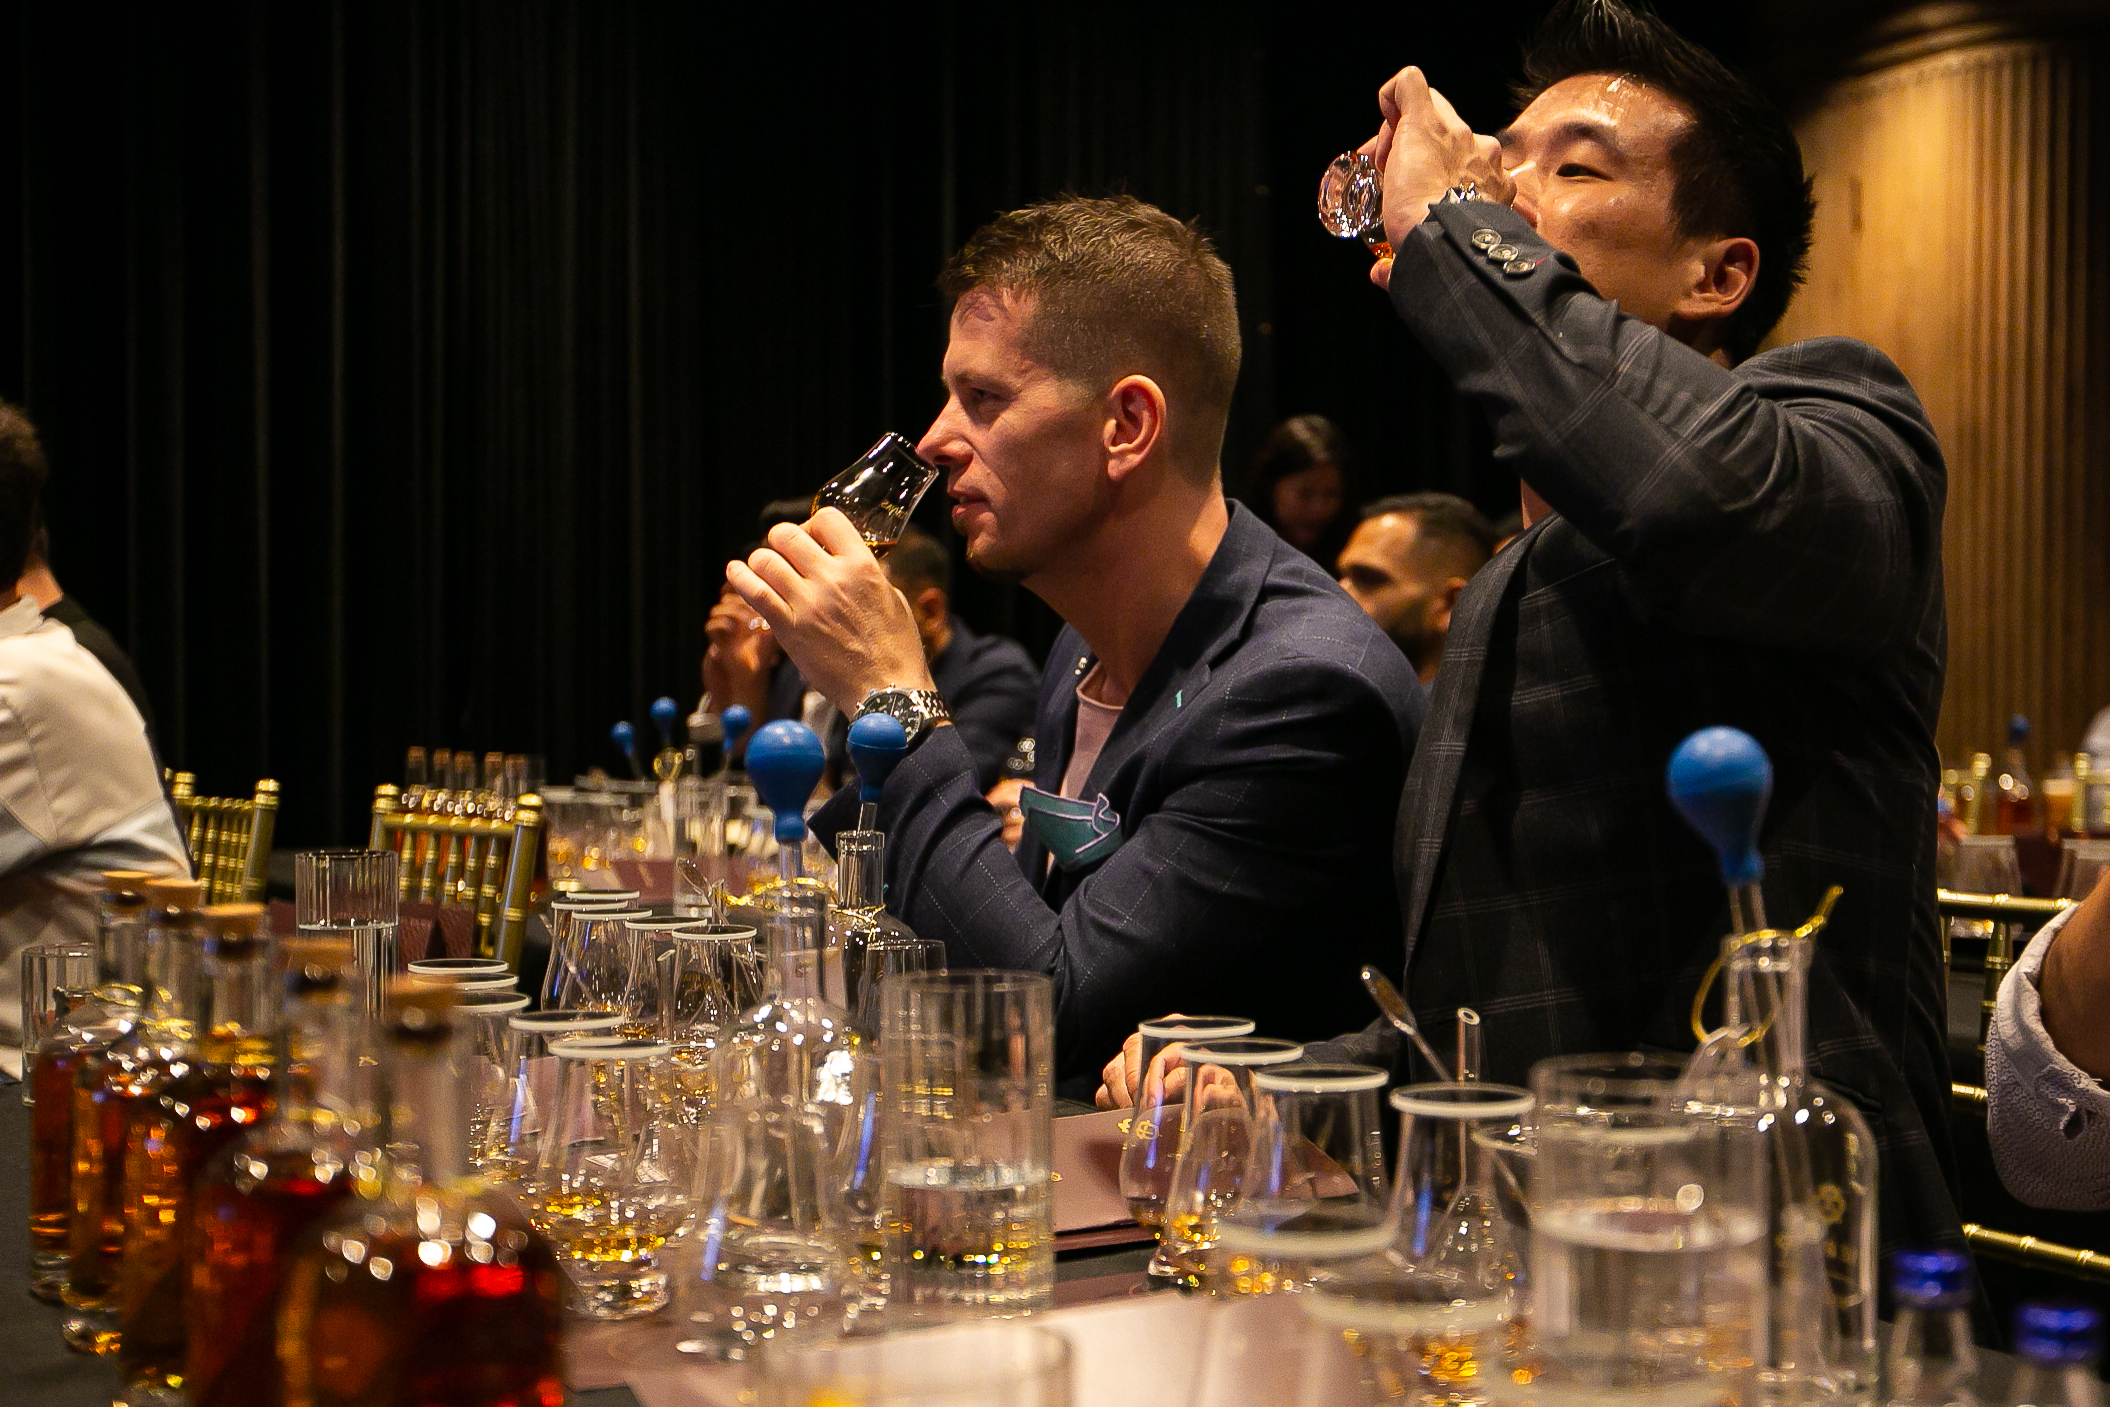 Participants at the workshop nosing the whisky